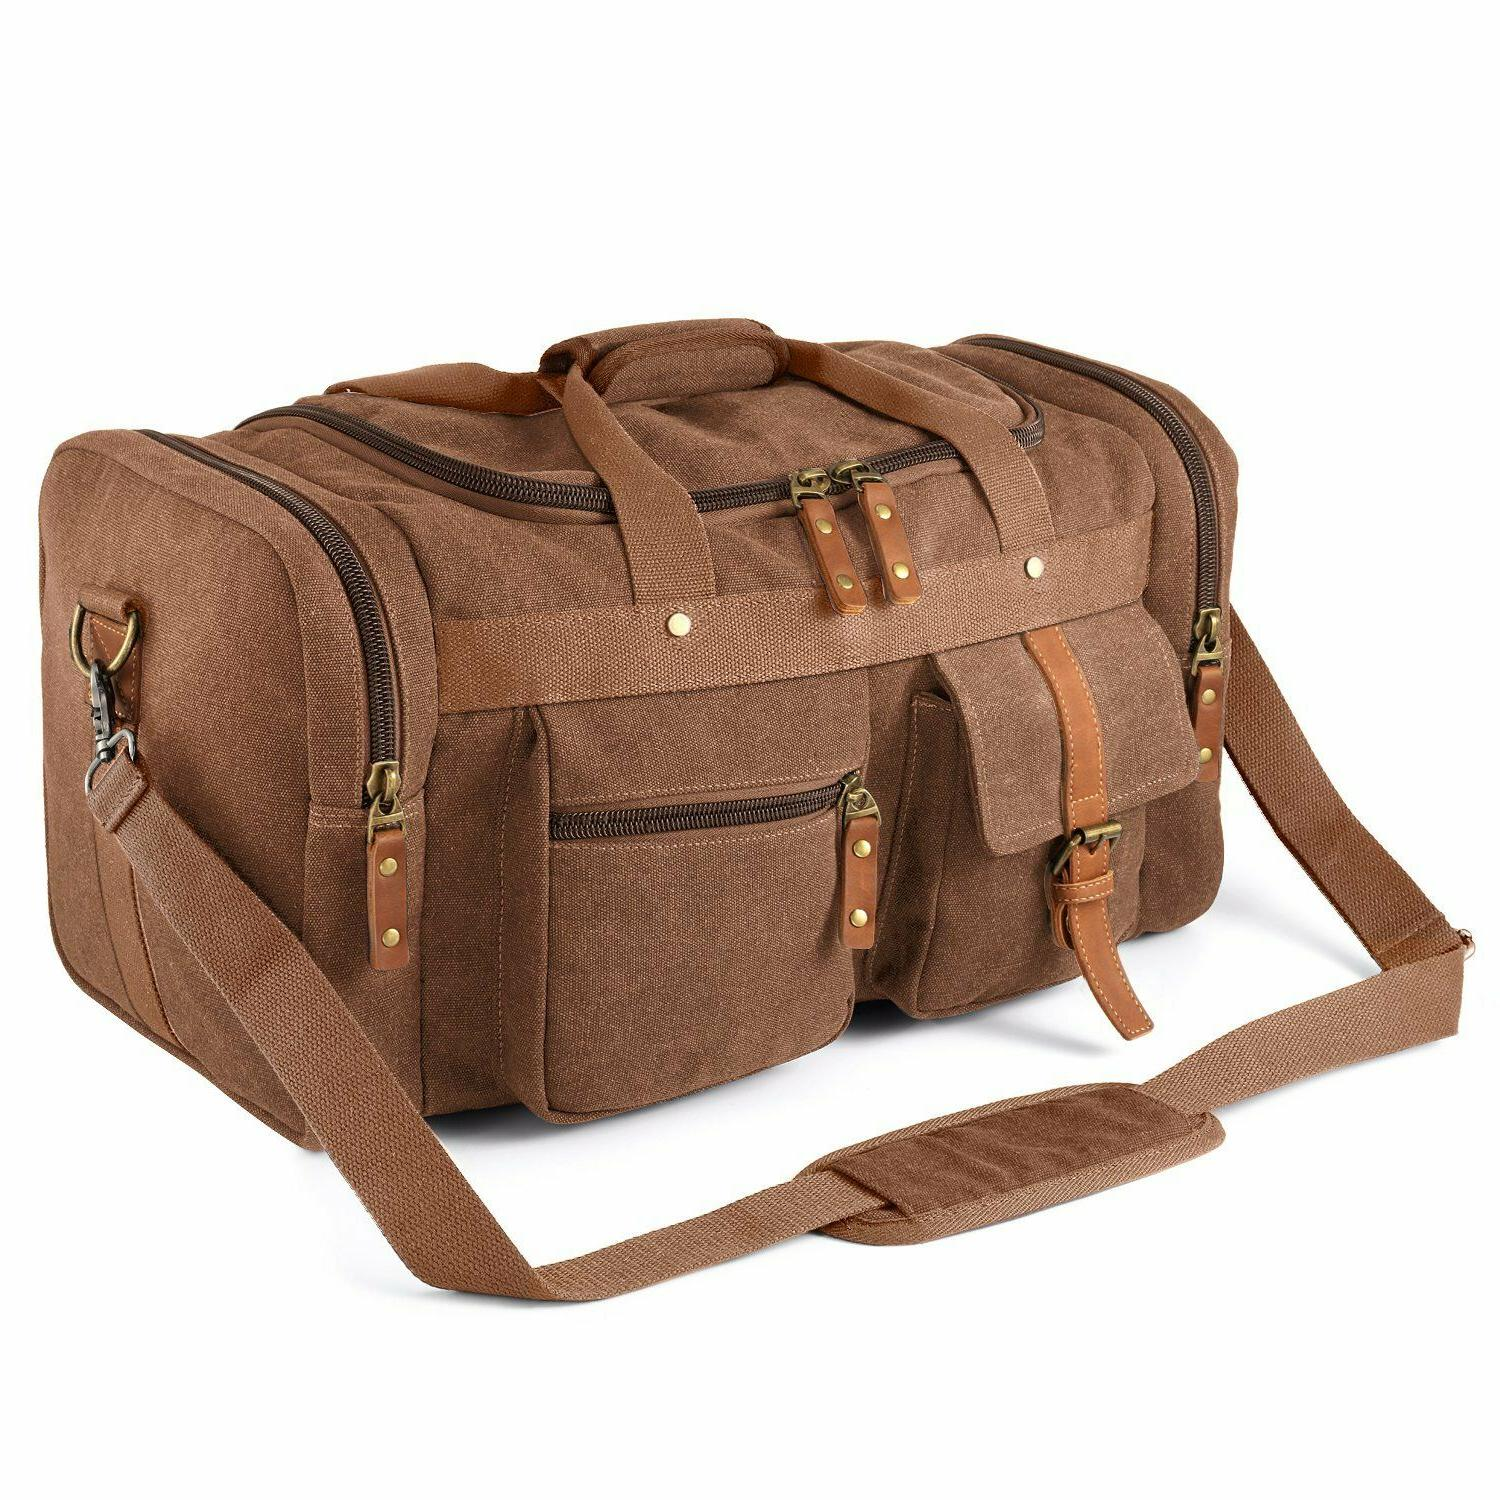 oversized canvas duffel overnight travel tote weekend